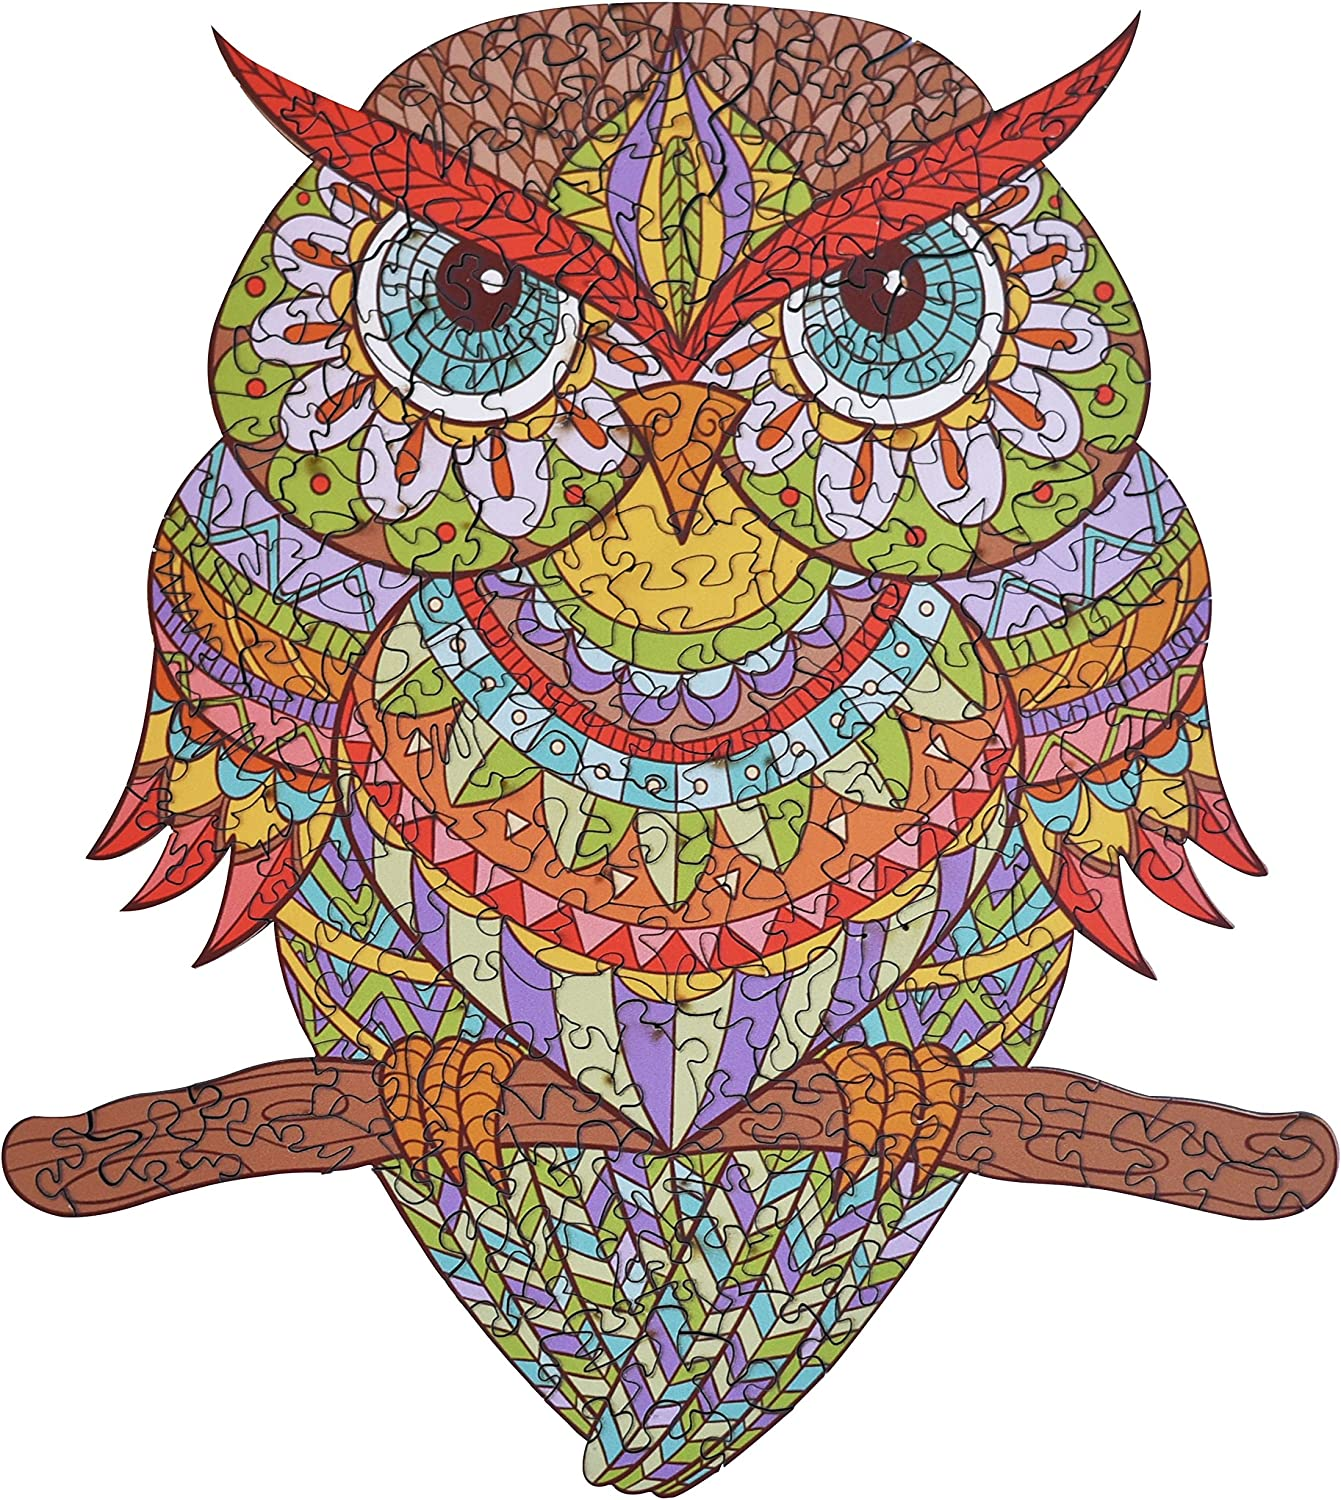 Wooden Jigsaw Puzzles - Colorful Owl Hartmaze HM-04 Small Bird Puzzle 206 Unique Shape Jigsaw Pieces-Beautiful Animal for Adults and 8 Years Age up Teens- Best for Family Game Play Collection.